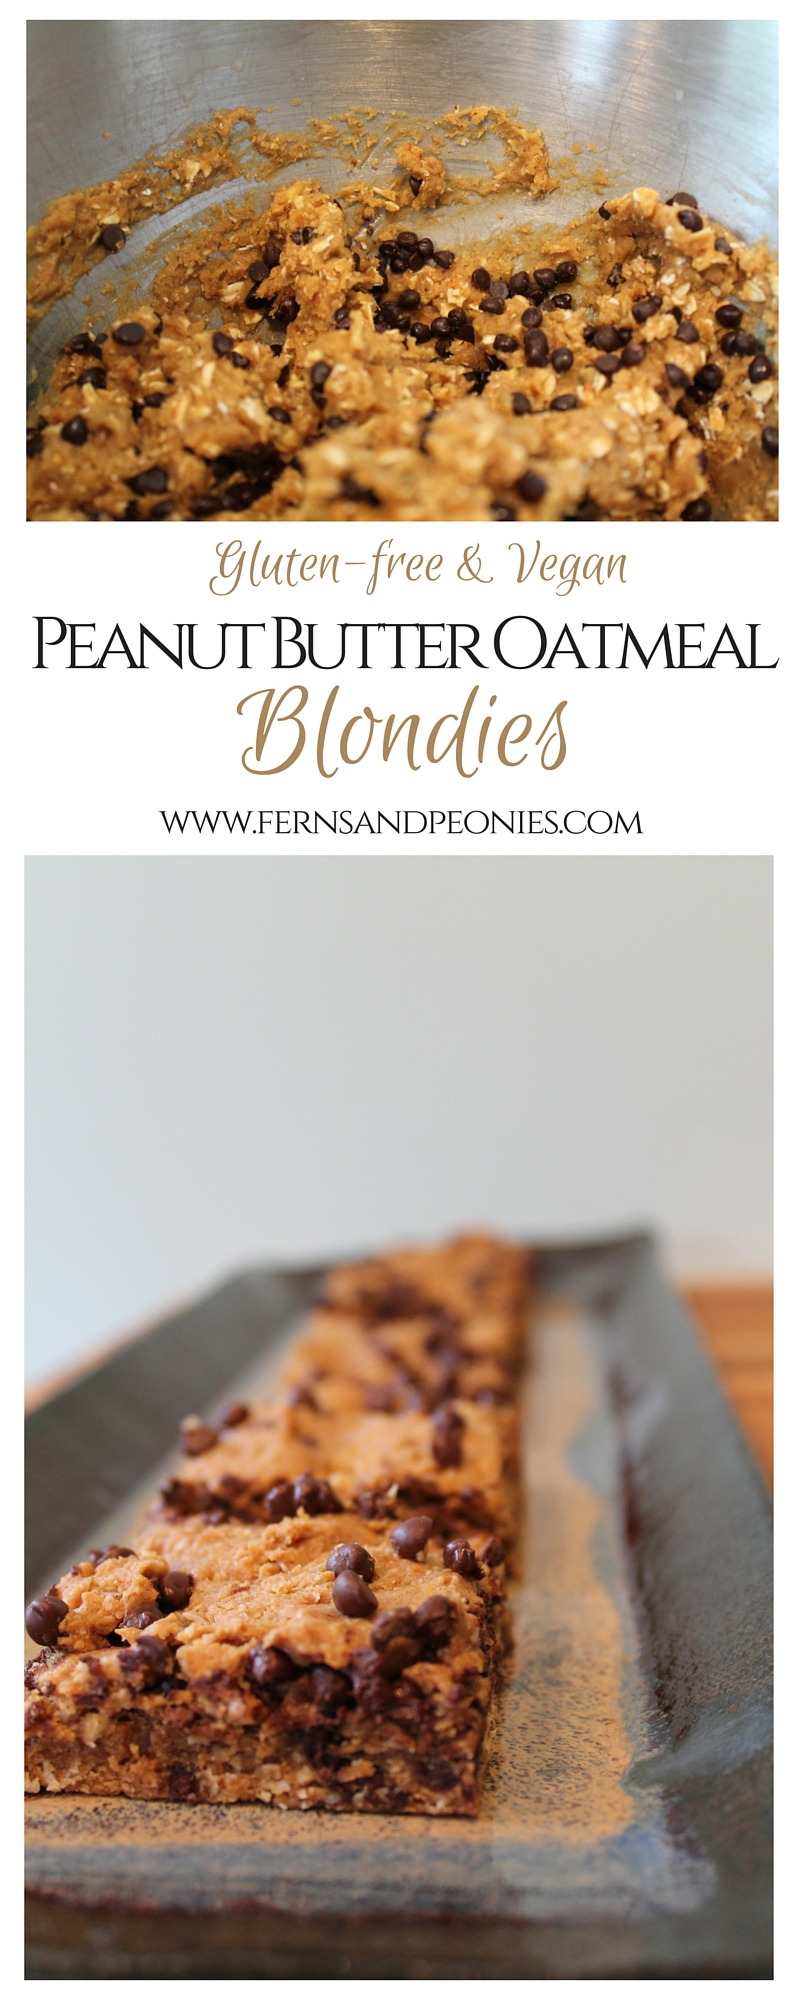 Peanut Butter Oatmeal Blondies (GF,V) from www.fernsandpeonies.com